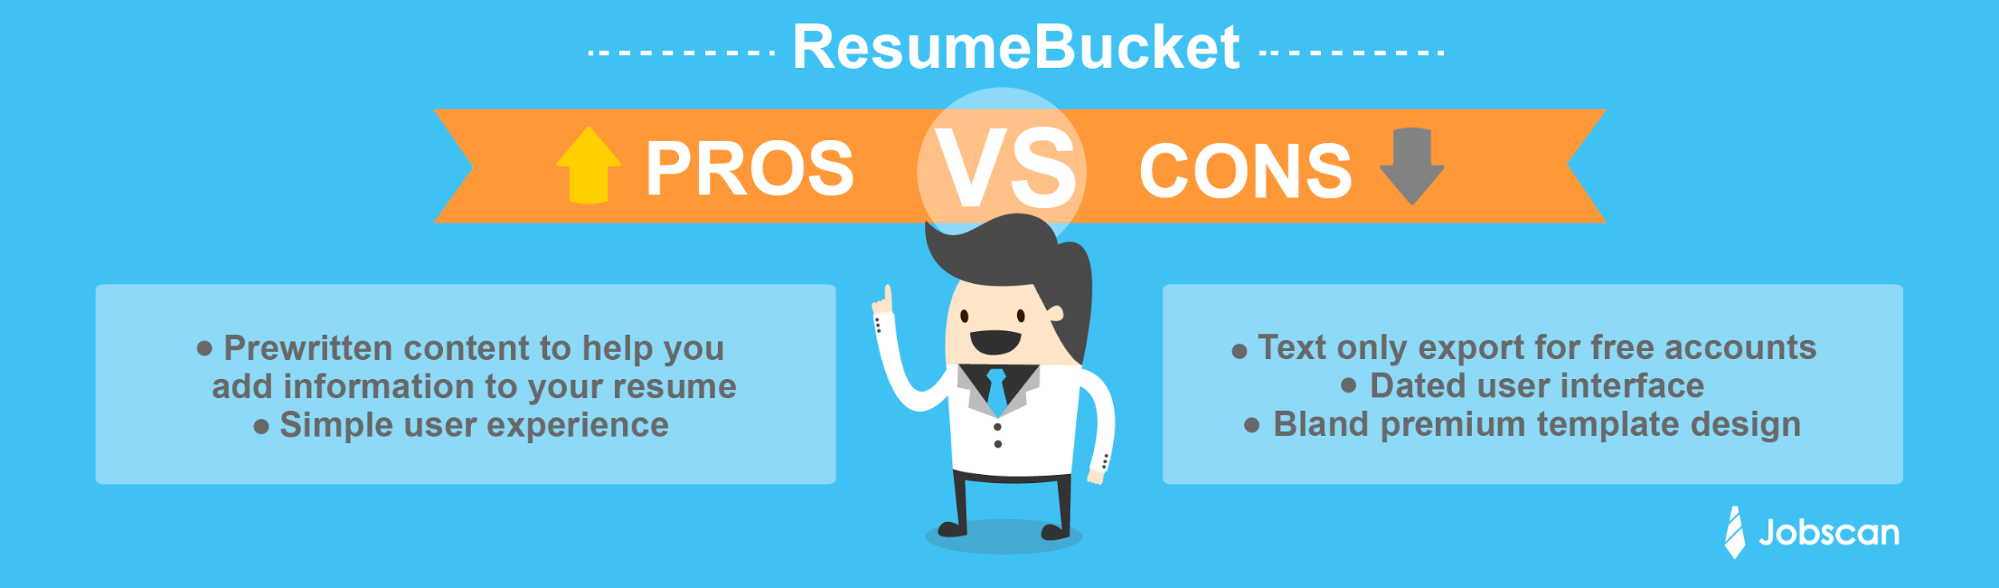 Resume Bucket Pro Con  Resume Builder Template Free